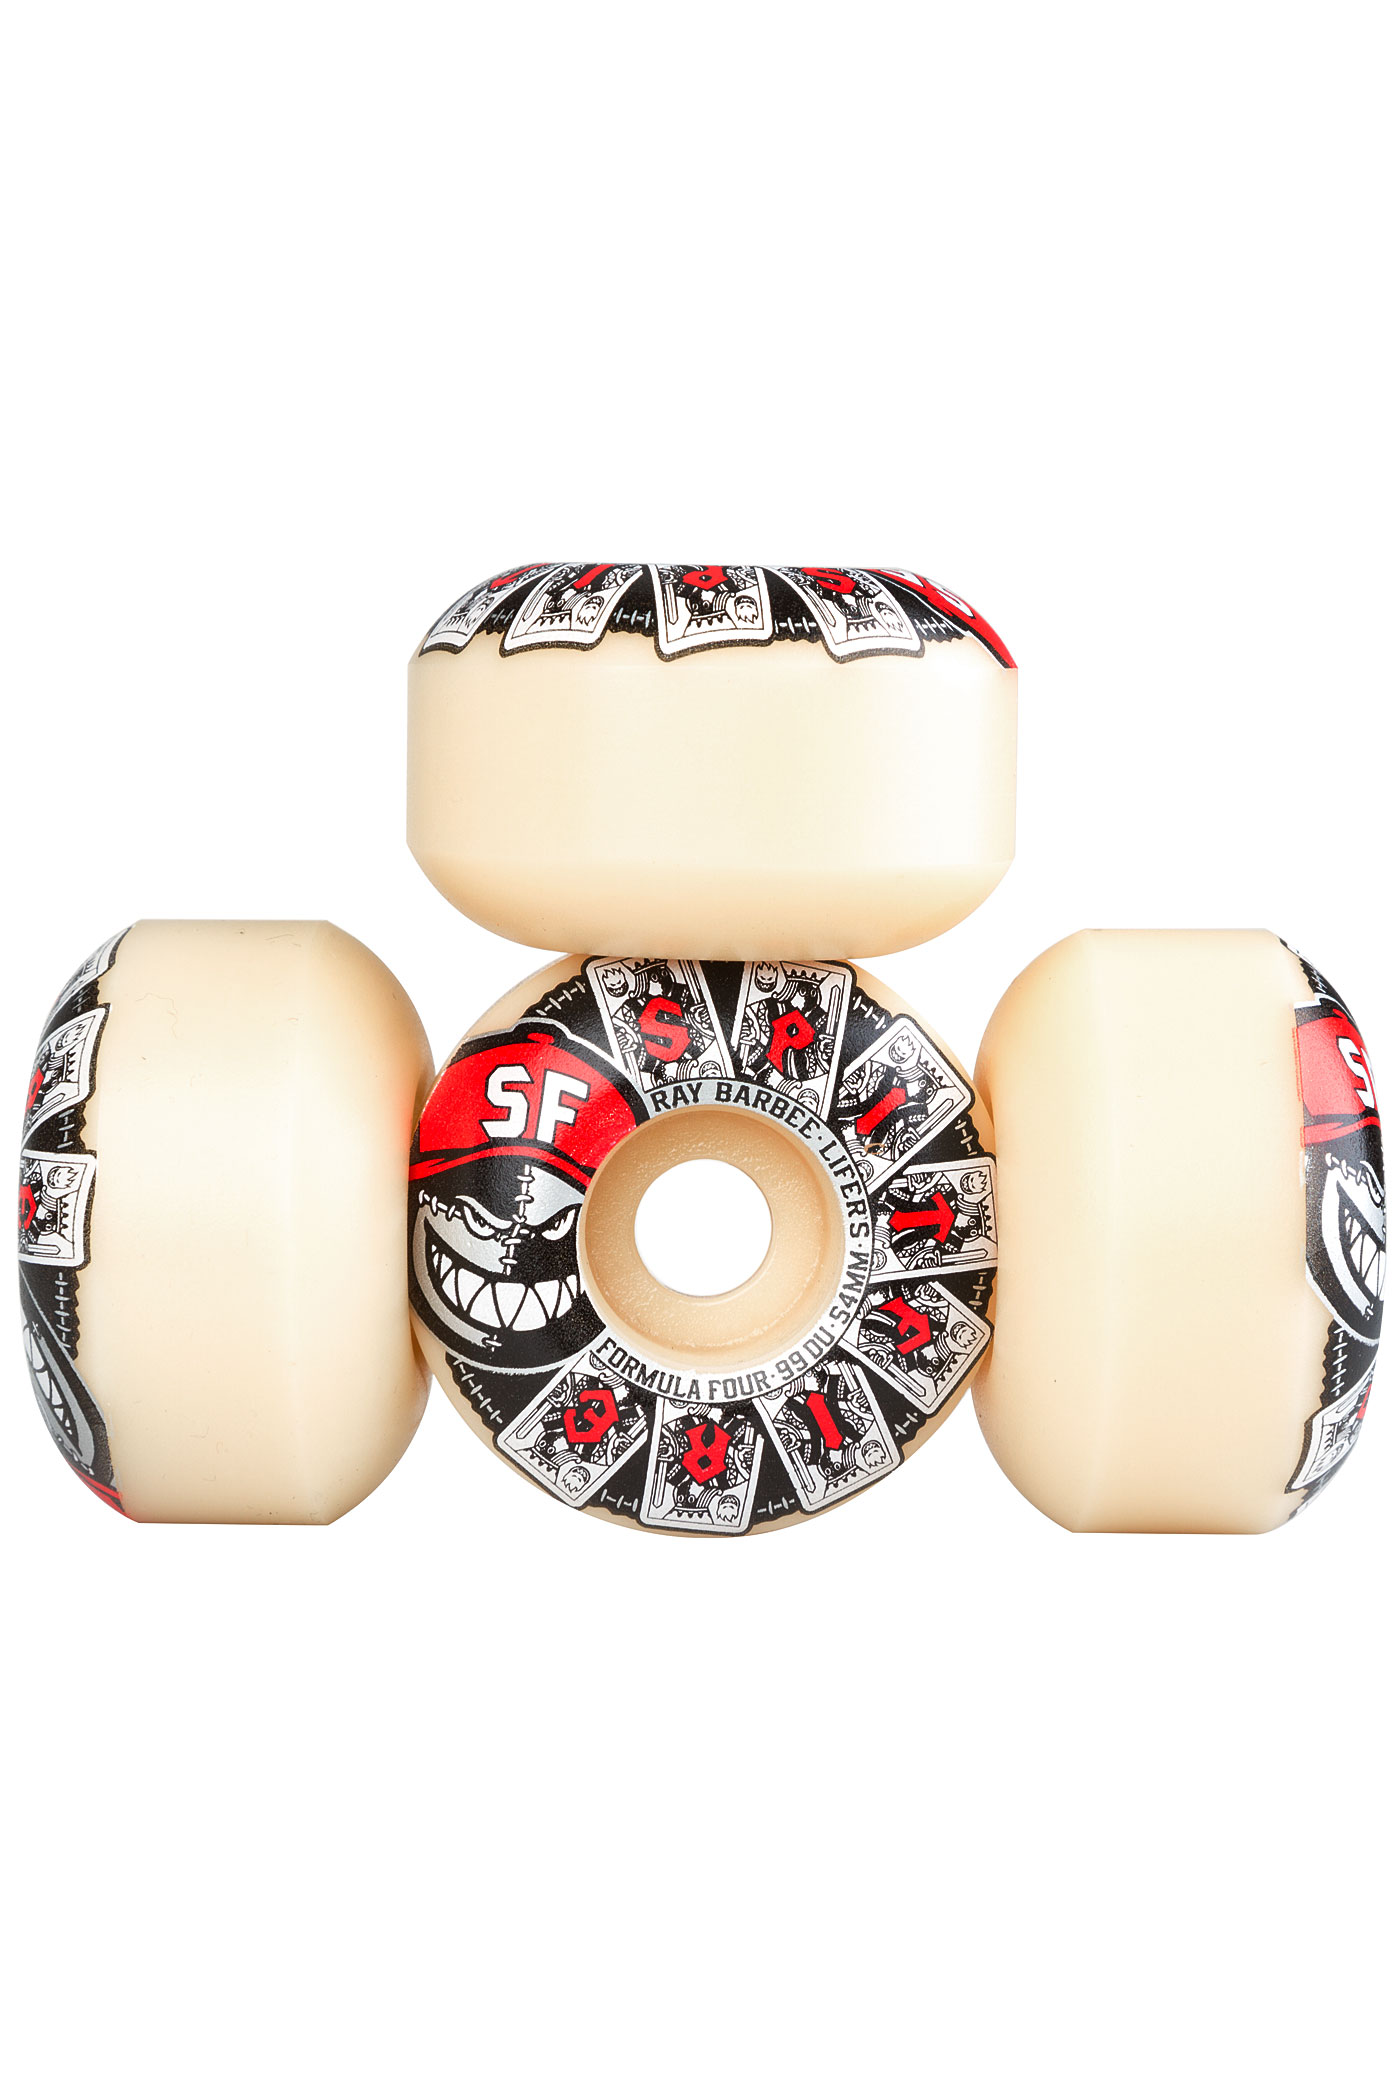 spitfire 54mm. spitfire barbee lifers formula four 54mm wheels (white) 4 pack